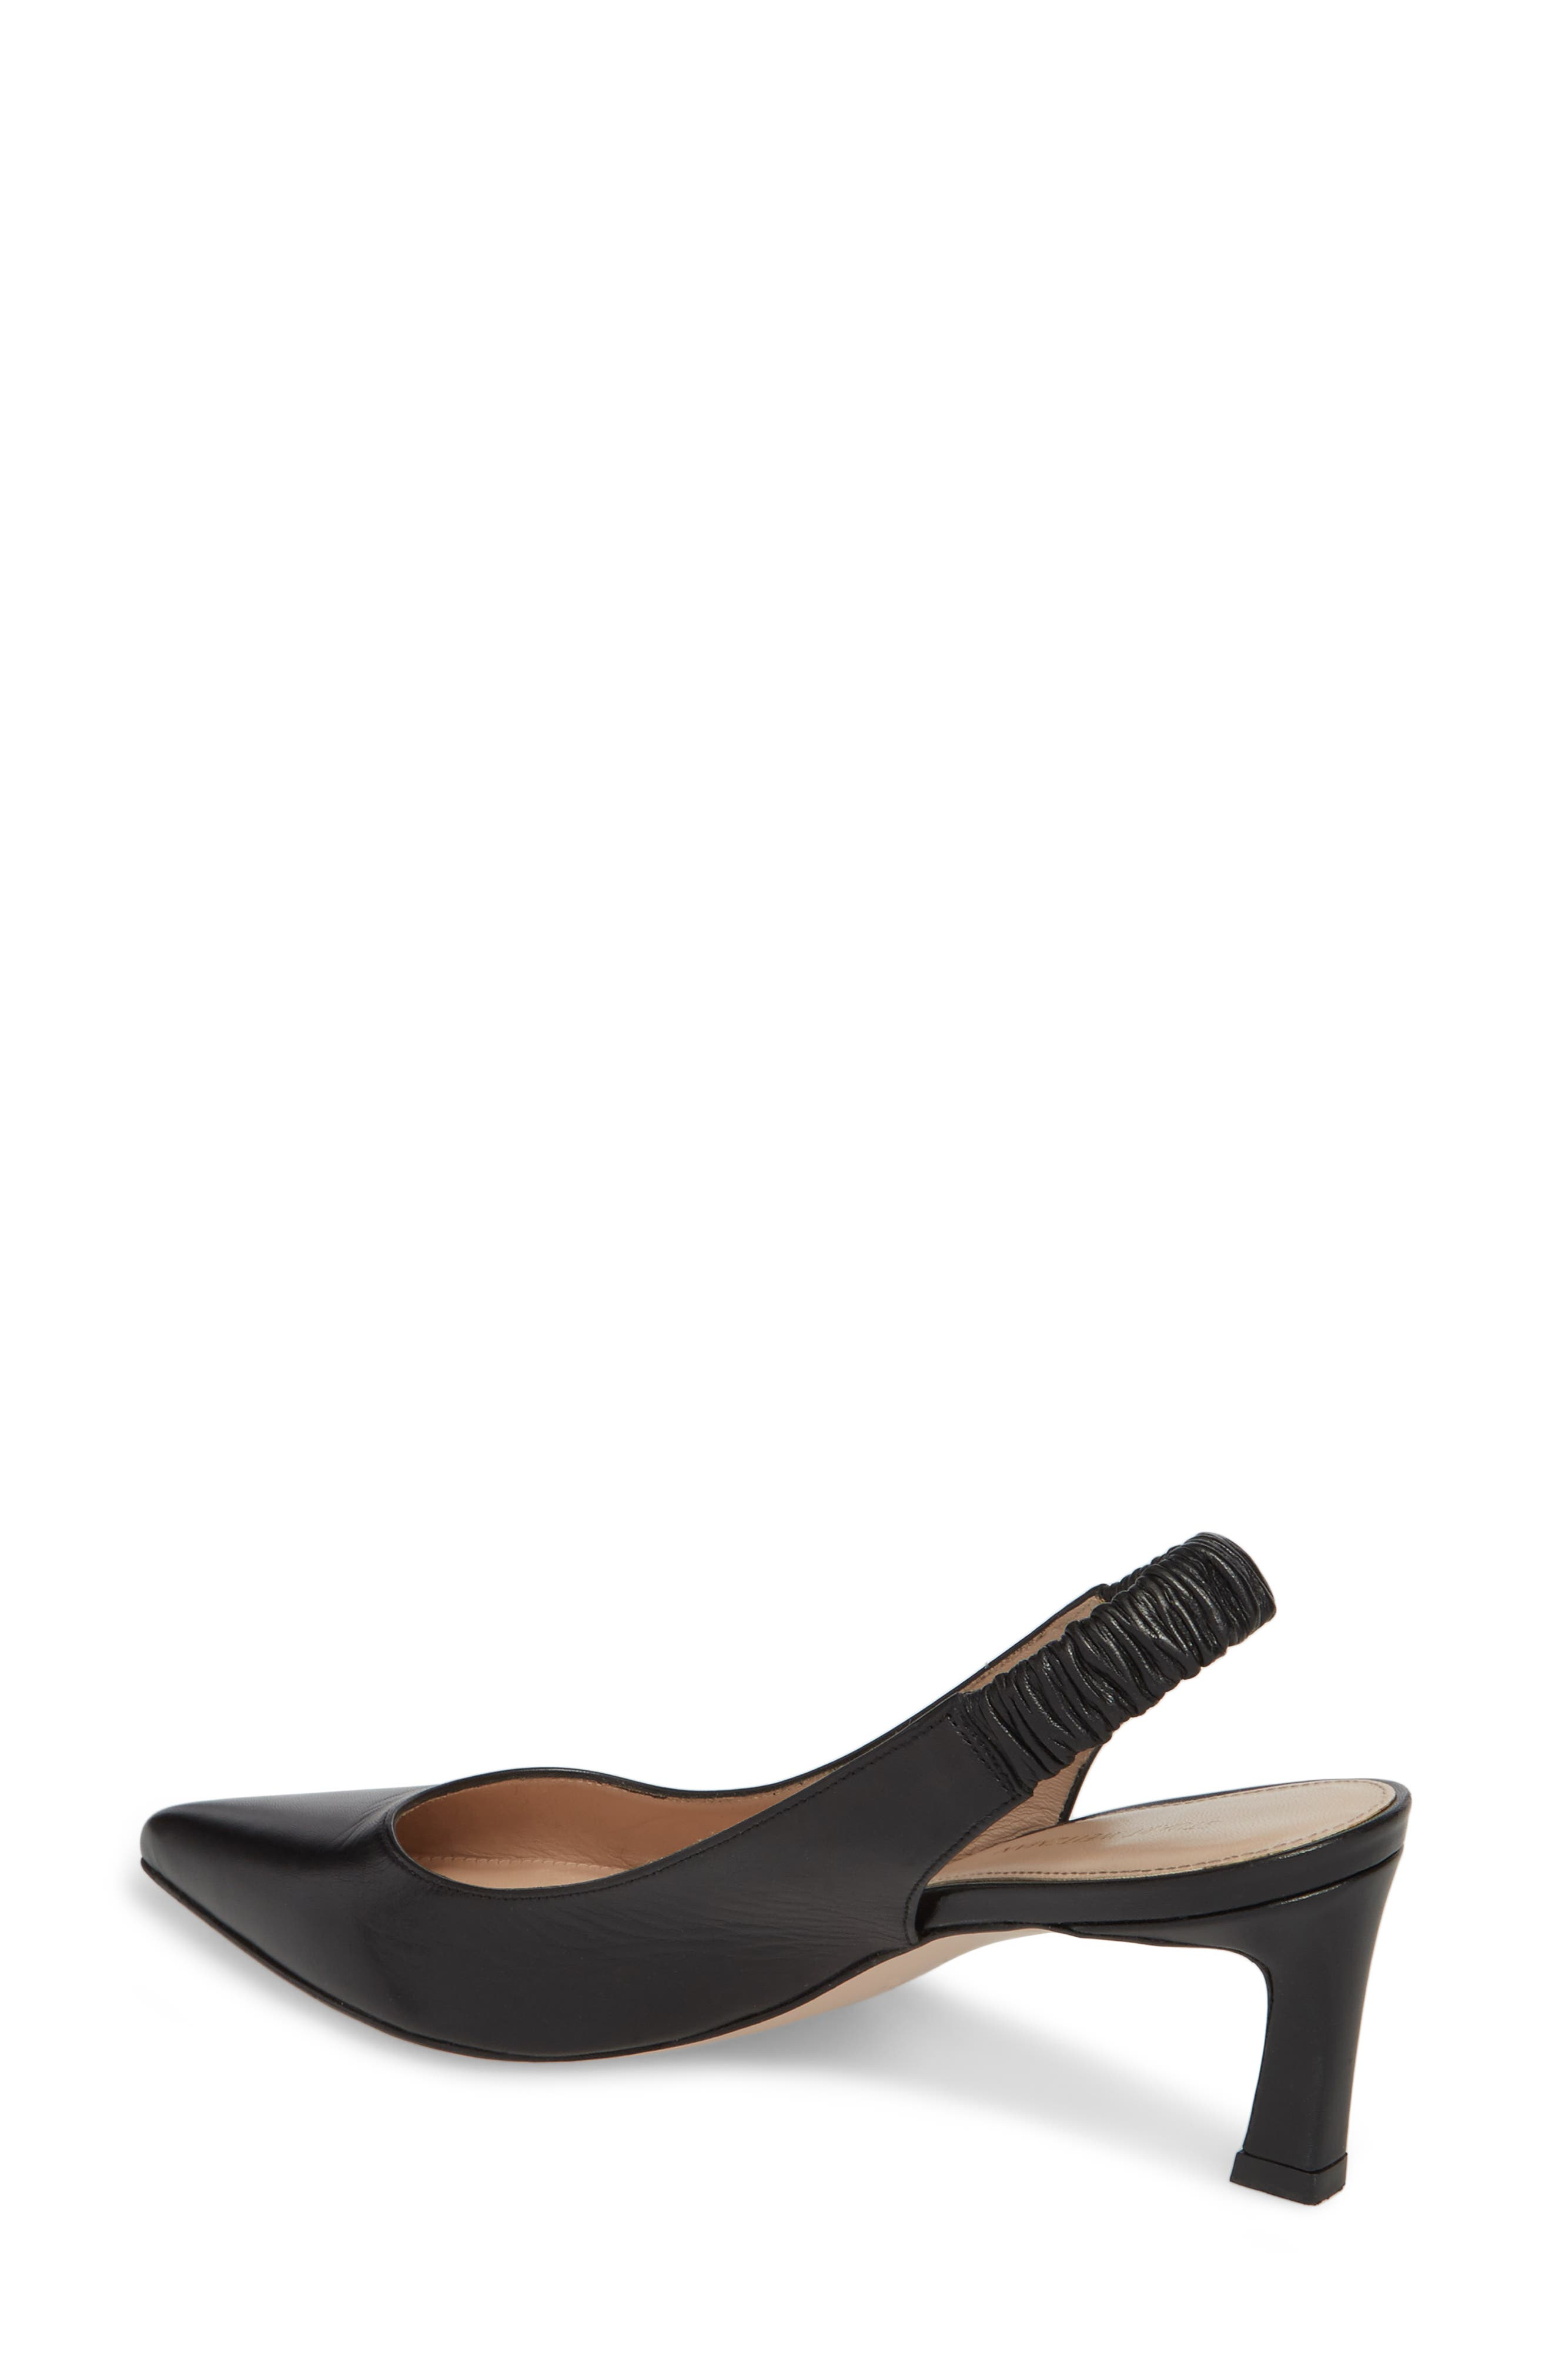 Hayday Slingback Pump,                             Alternate thumbnail 5, color,